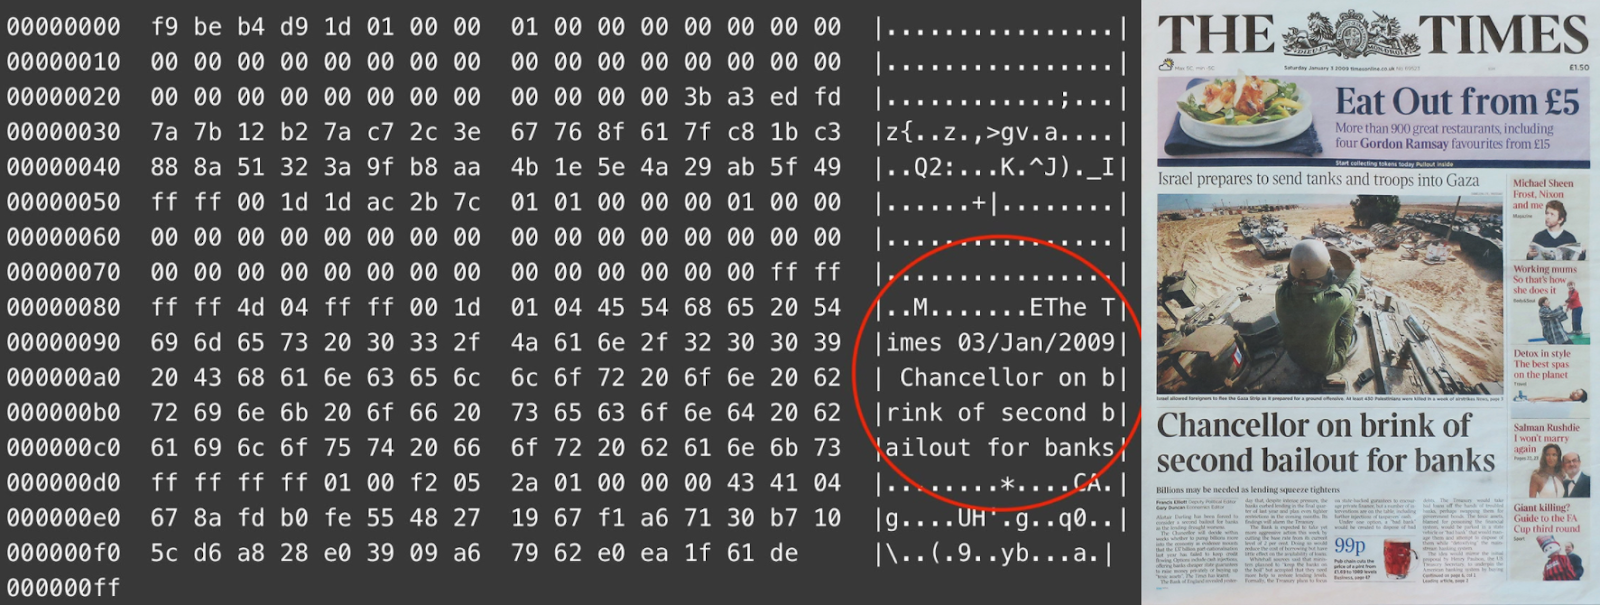 Bitcoin Genesis Block: The Times 03/Jan2009 Chancellor on brink of second bailout for banks